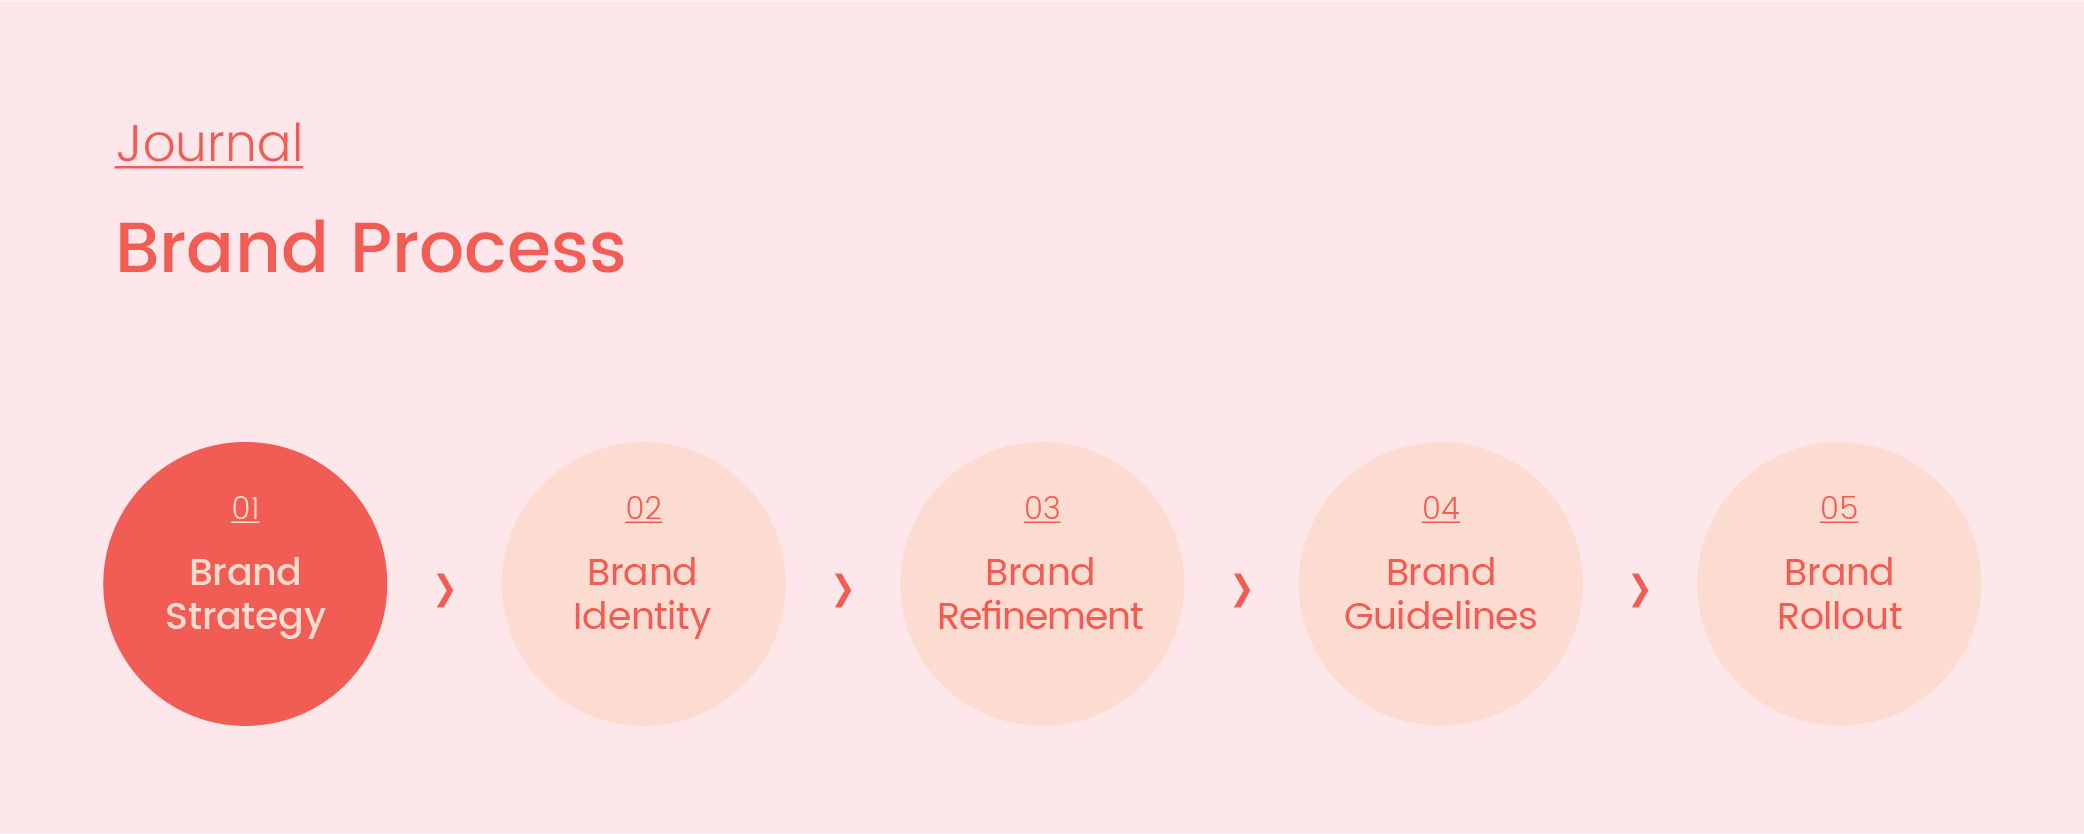 Brand Process_01_Strategy_Artboard 1 copy 3.png